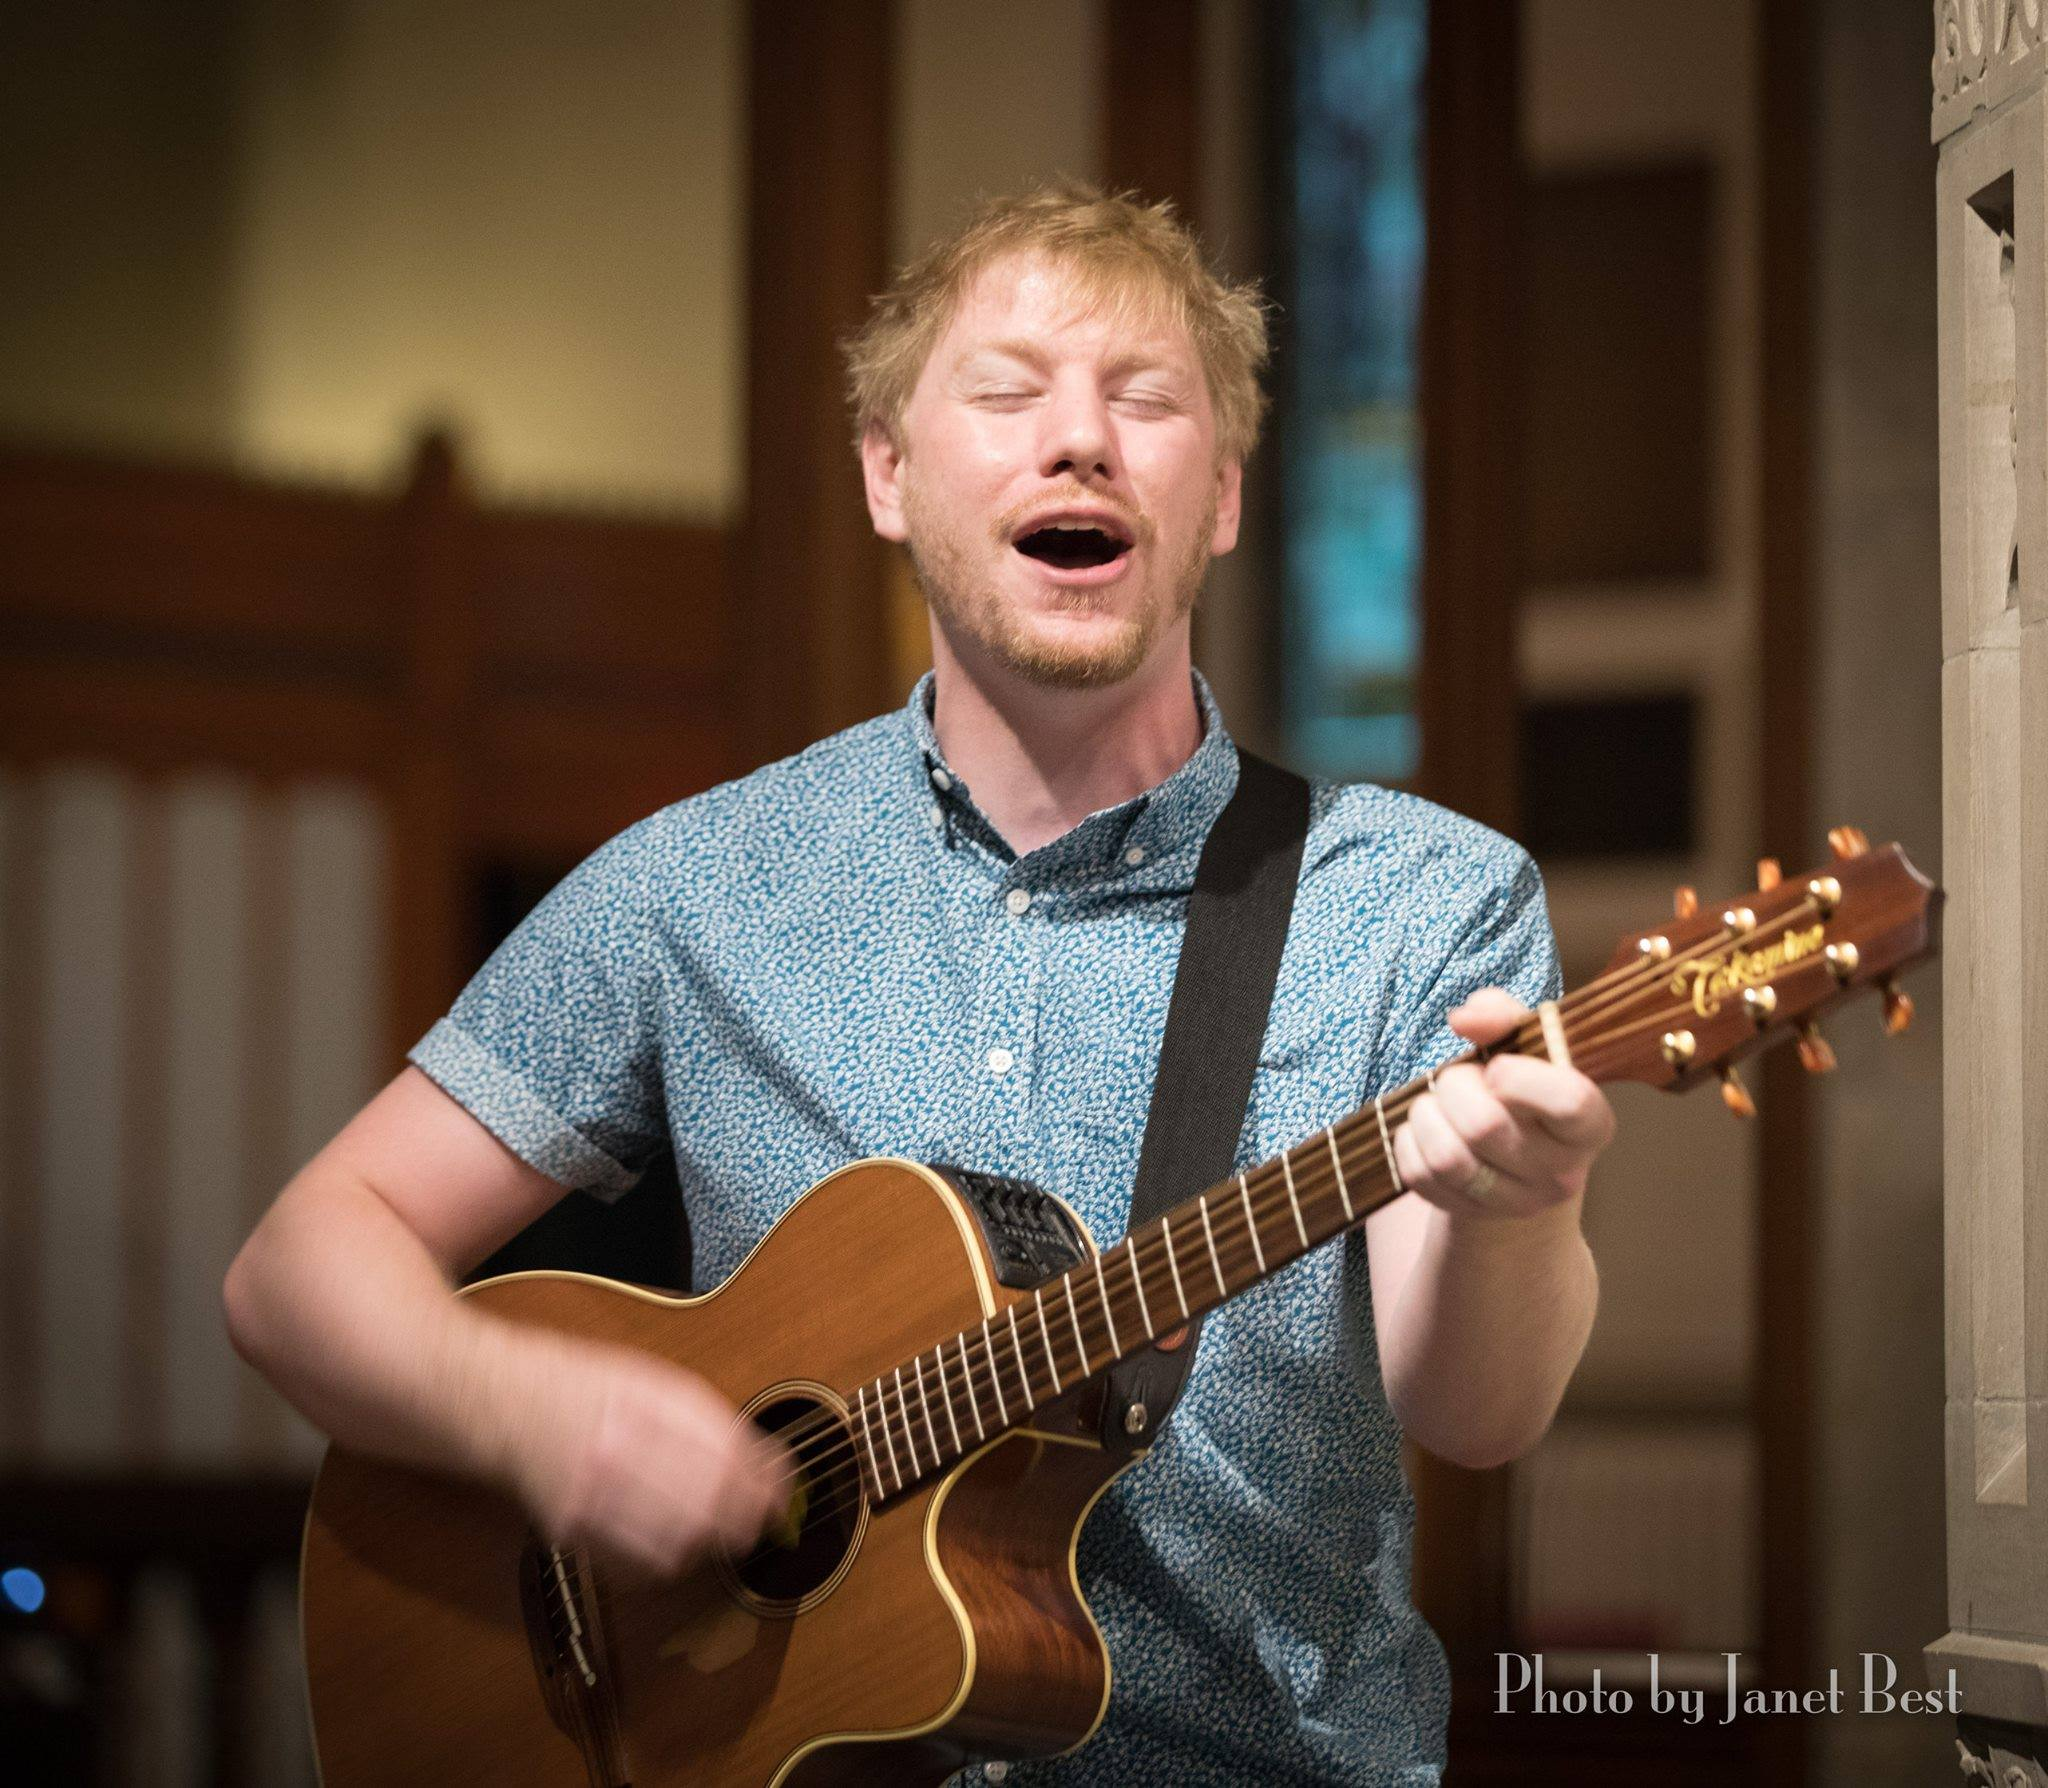 Zack Ingles, Bishop's Confirmation Day Musician and Worship Leader